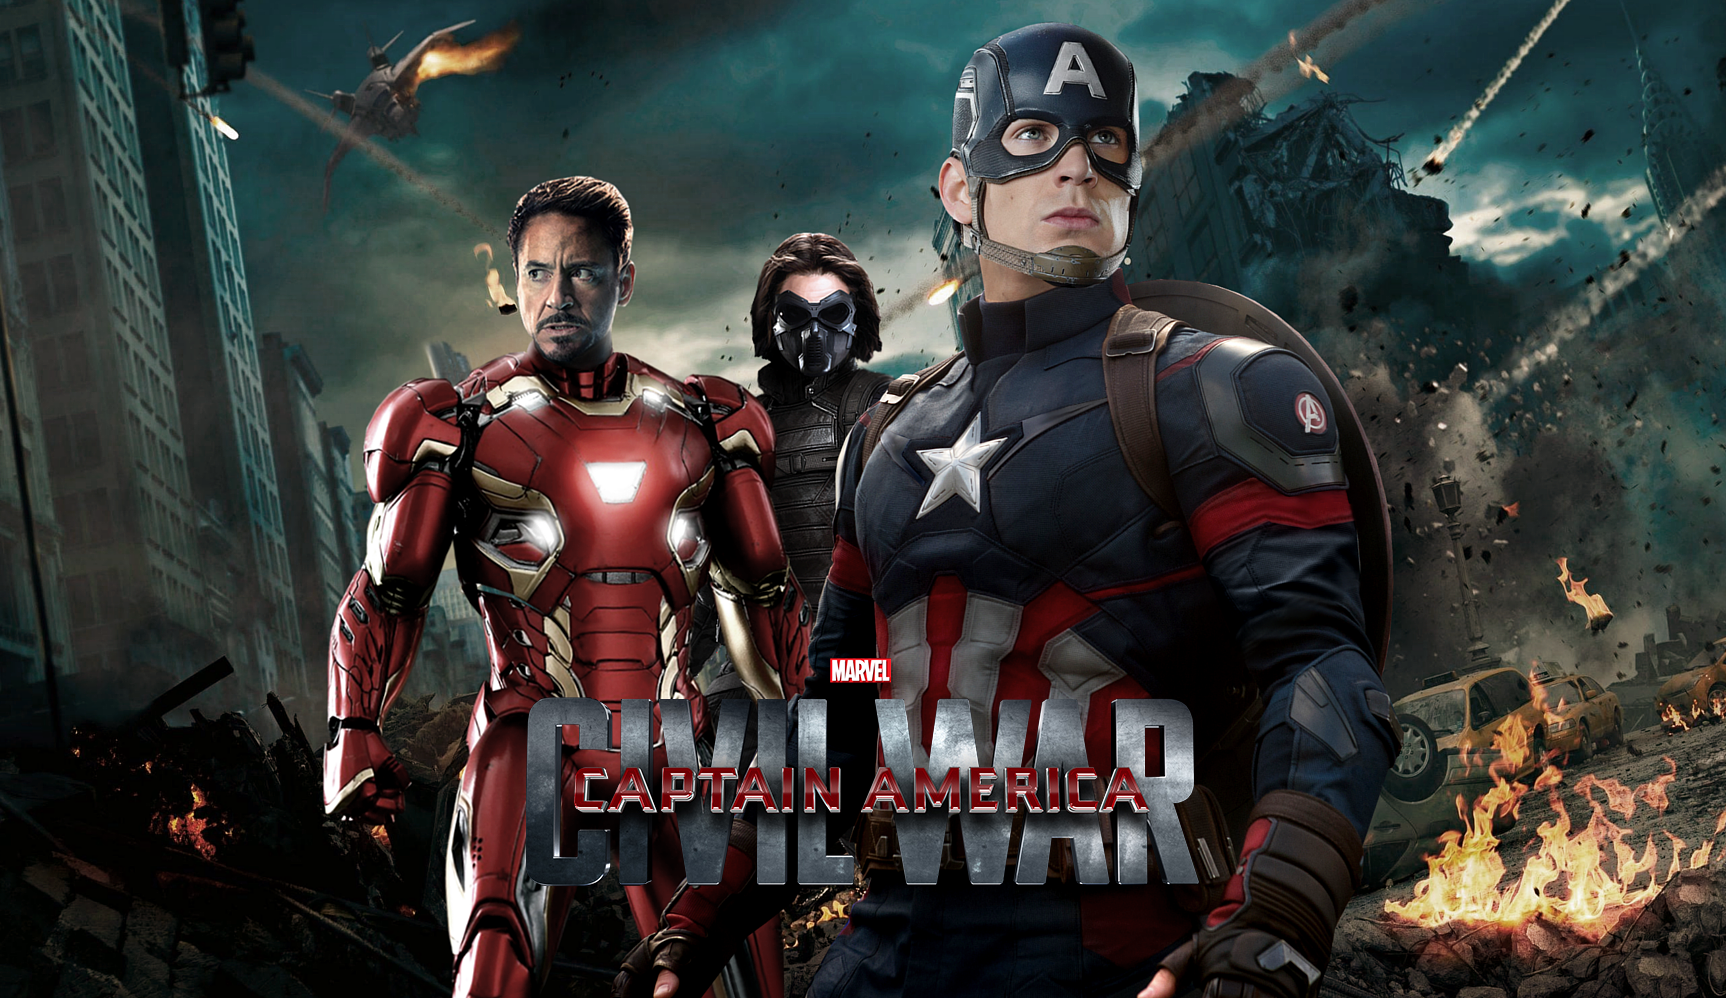 CAPTAIN AMERICA: CIVIL WAR 'HISTORICALLY INACCURATE'